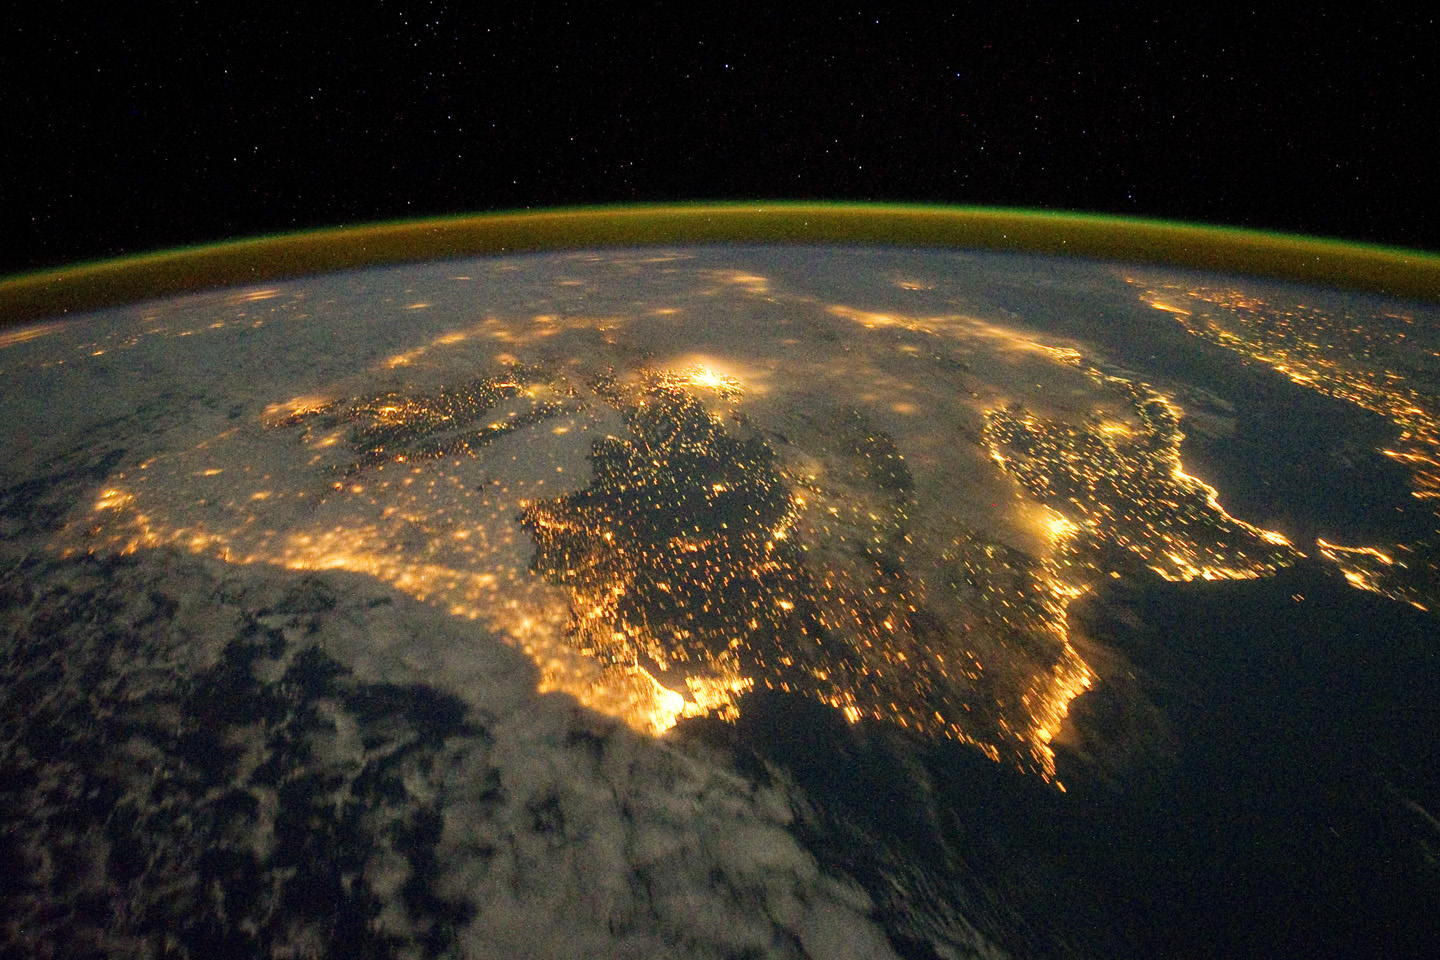 File:Barcelona, Spain - Flickr - NASA Goddard Photo and ...